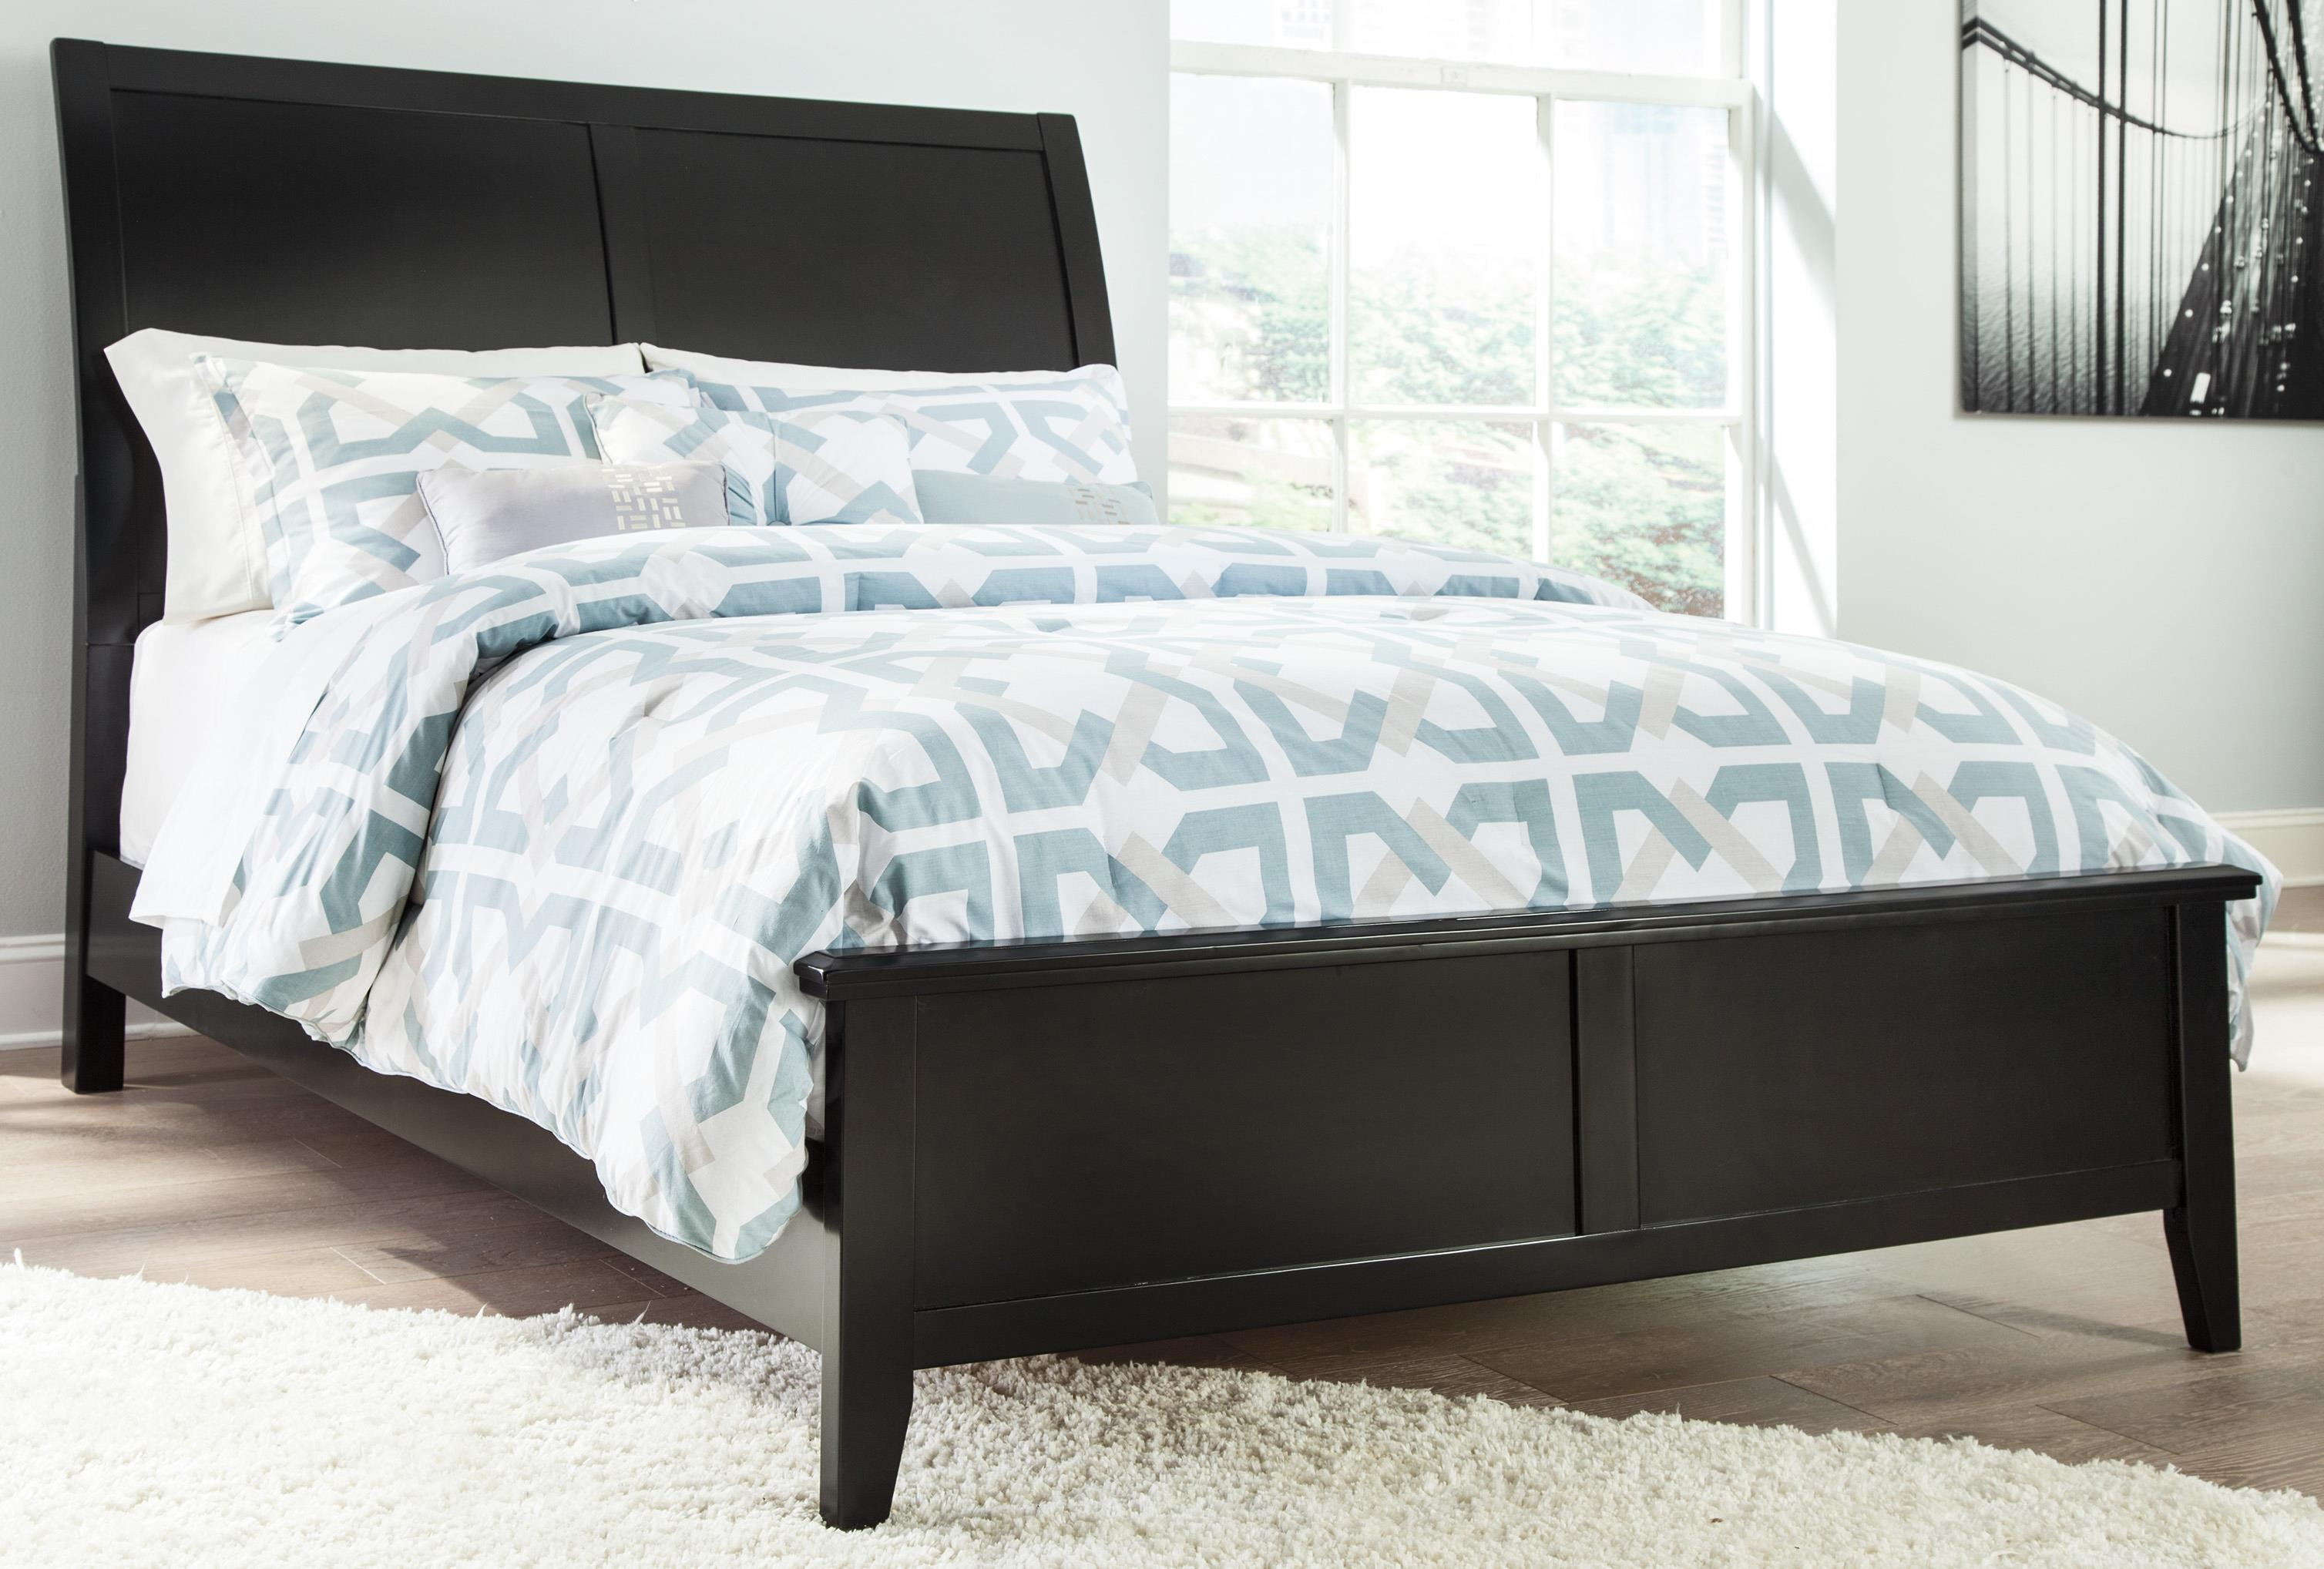 Signature Design by Ashley Braflin Cal King Bed with Sleigh Headboard - Item Number: B591-58+94